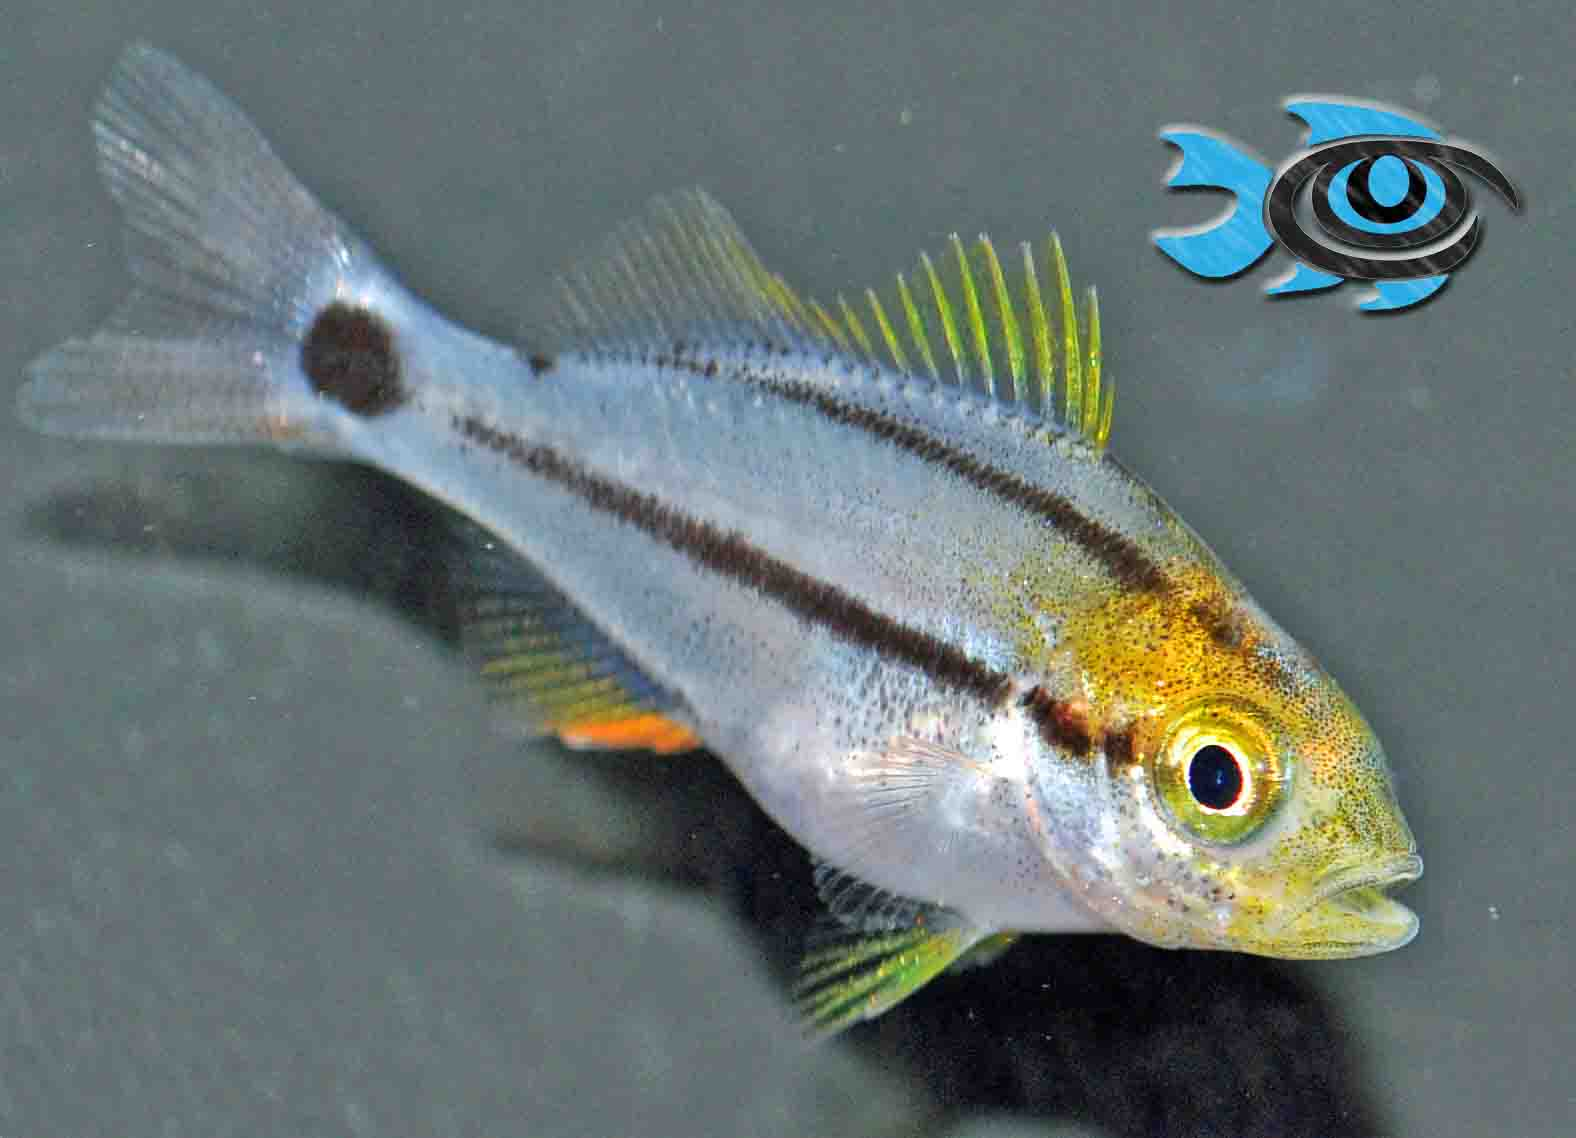 Captive-bred Porkfish from Fisheye Aquaculture bring another pelagic spawner to the commercial market.